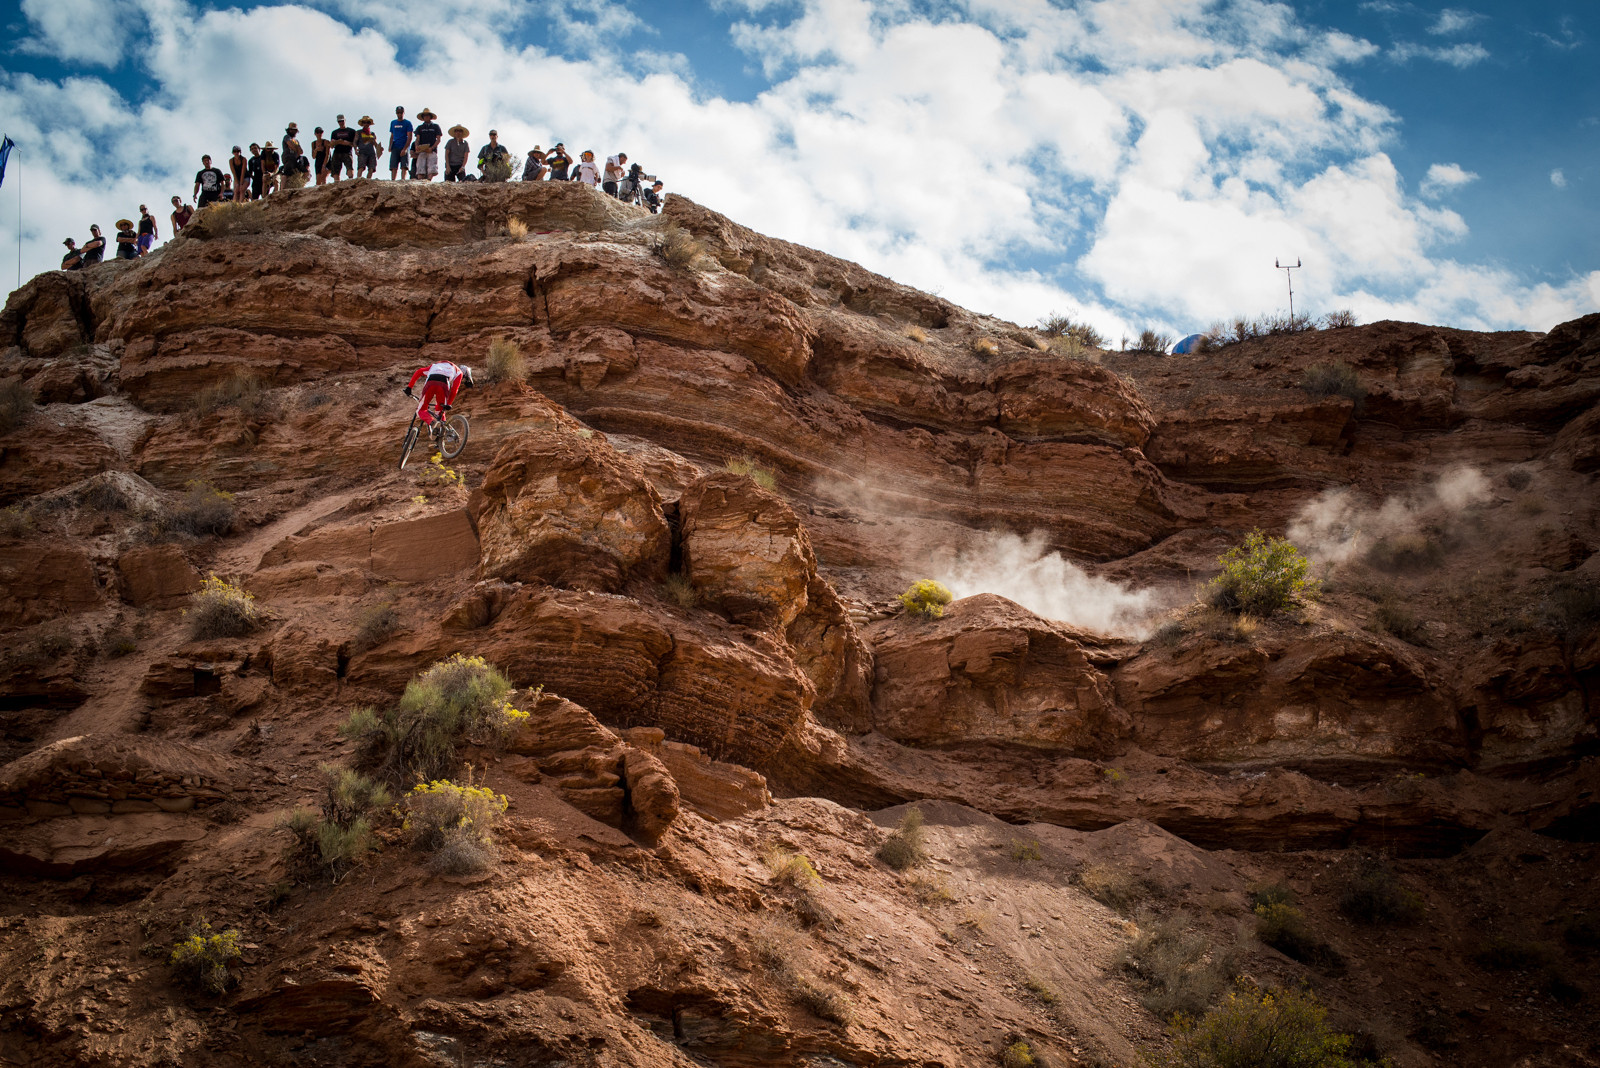 Brandon Semenuk - 2015 Red Bull Rampage Finals - Mountain Biking Pictures - Vital MTB